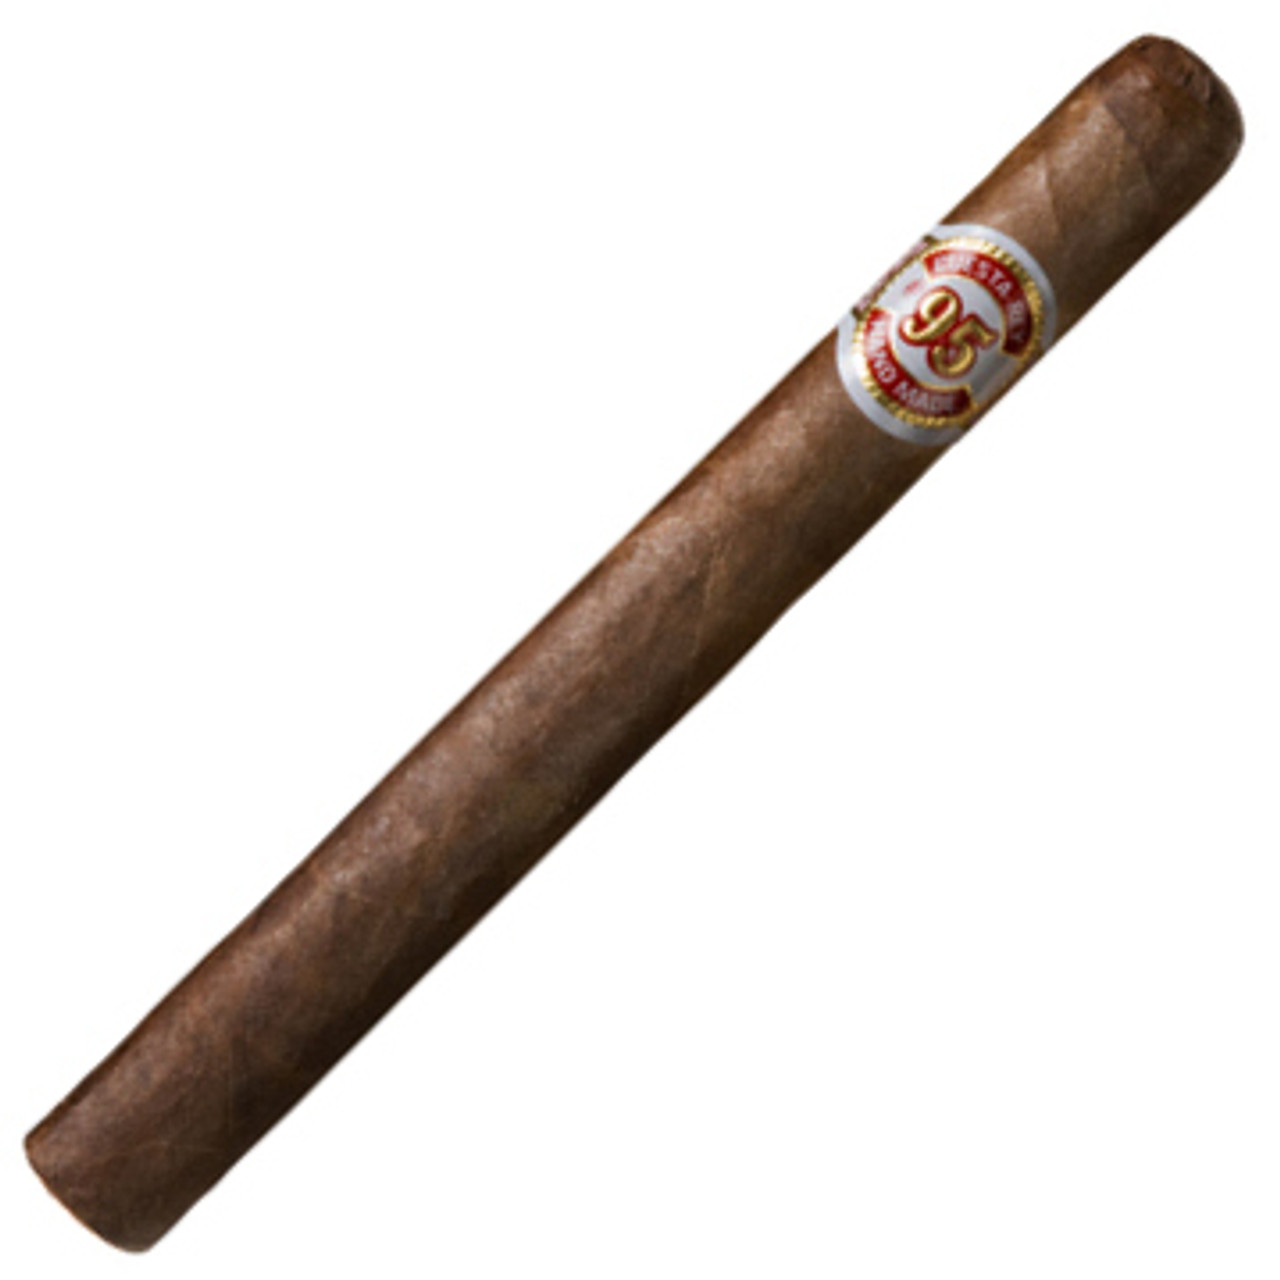 Cuesta Rey No. 95 Cigars - 6 1/4 x 42 (Box of 25)